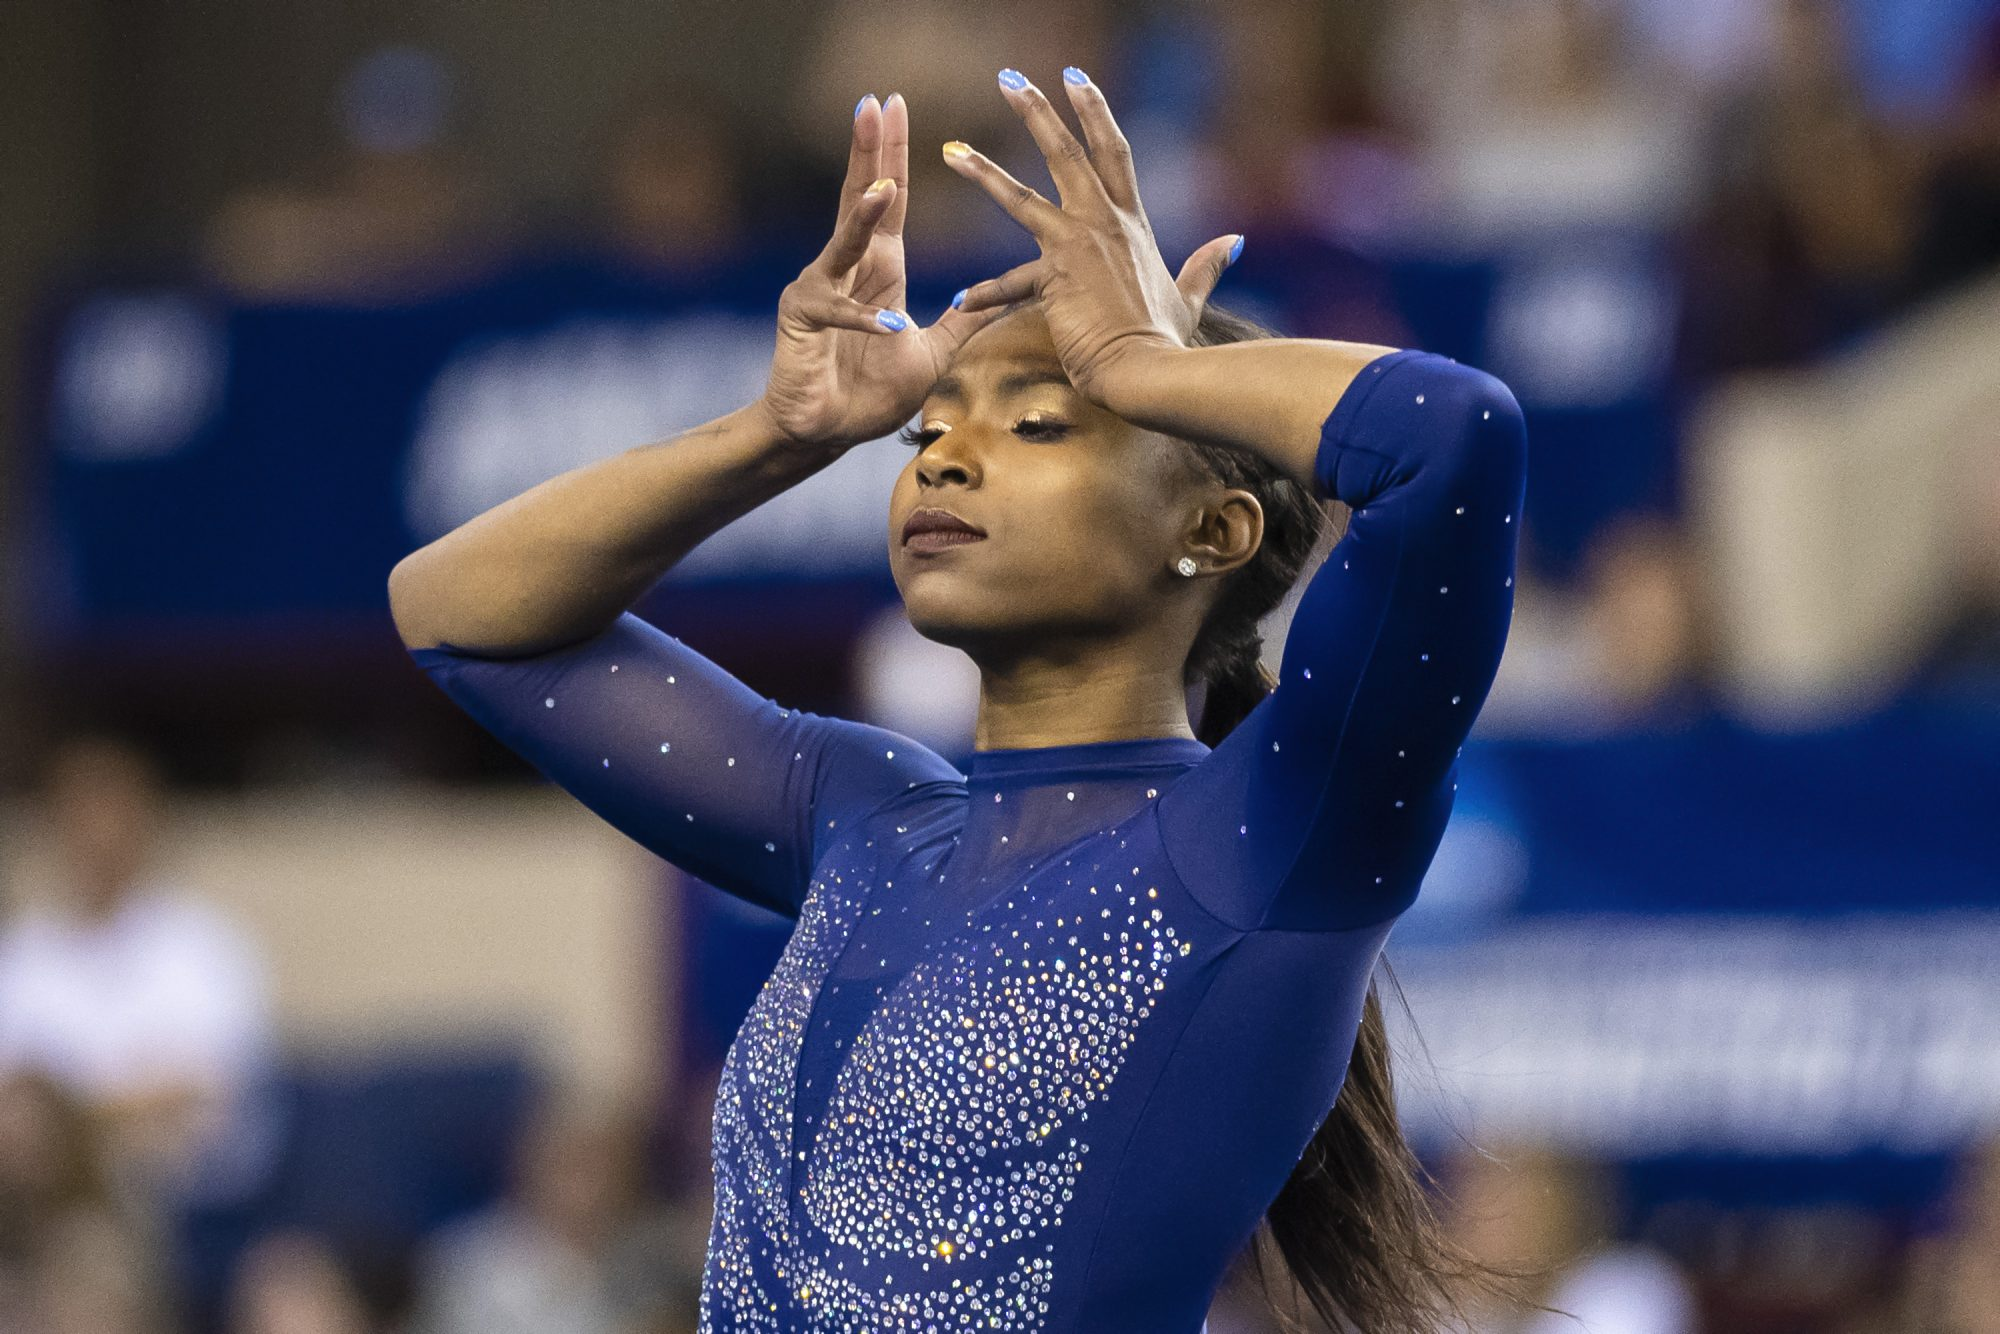 Nia Dennis at the 2019 NCAA Division I Women's Gymnastics Championship